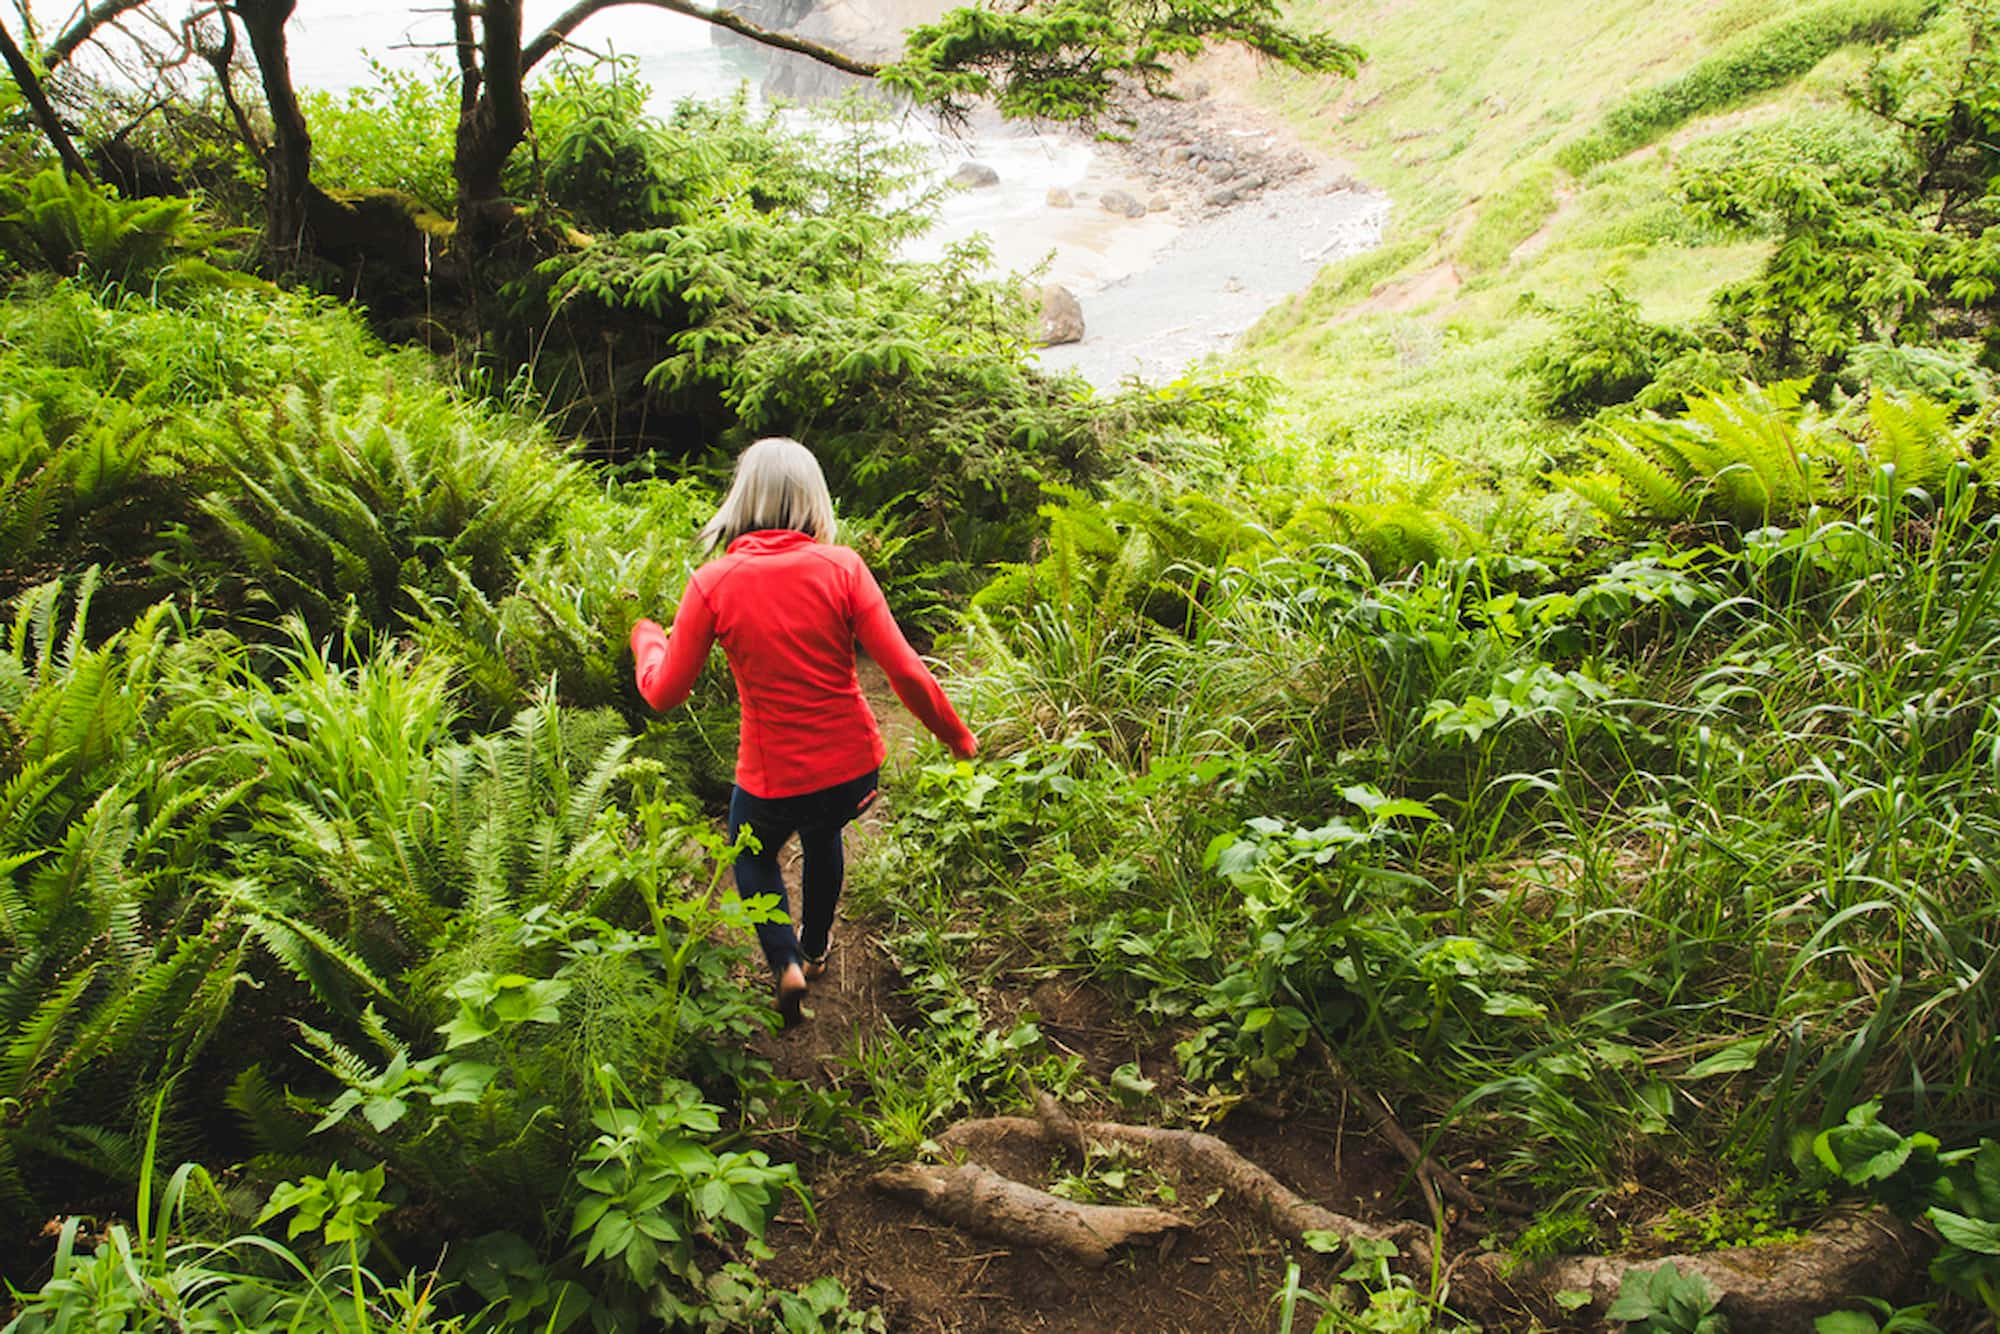 Women walking downhill through ferns and trees towards the ocean.